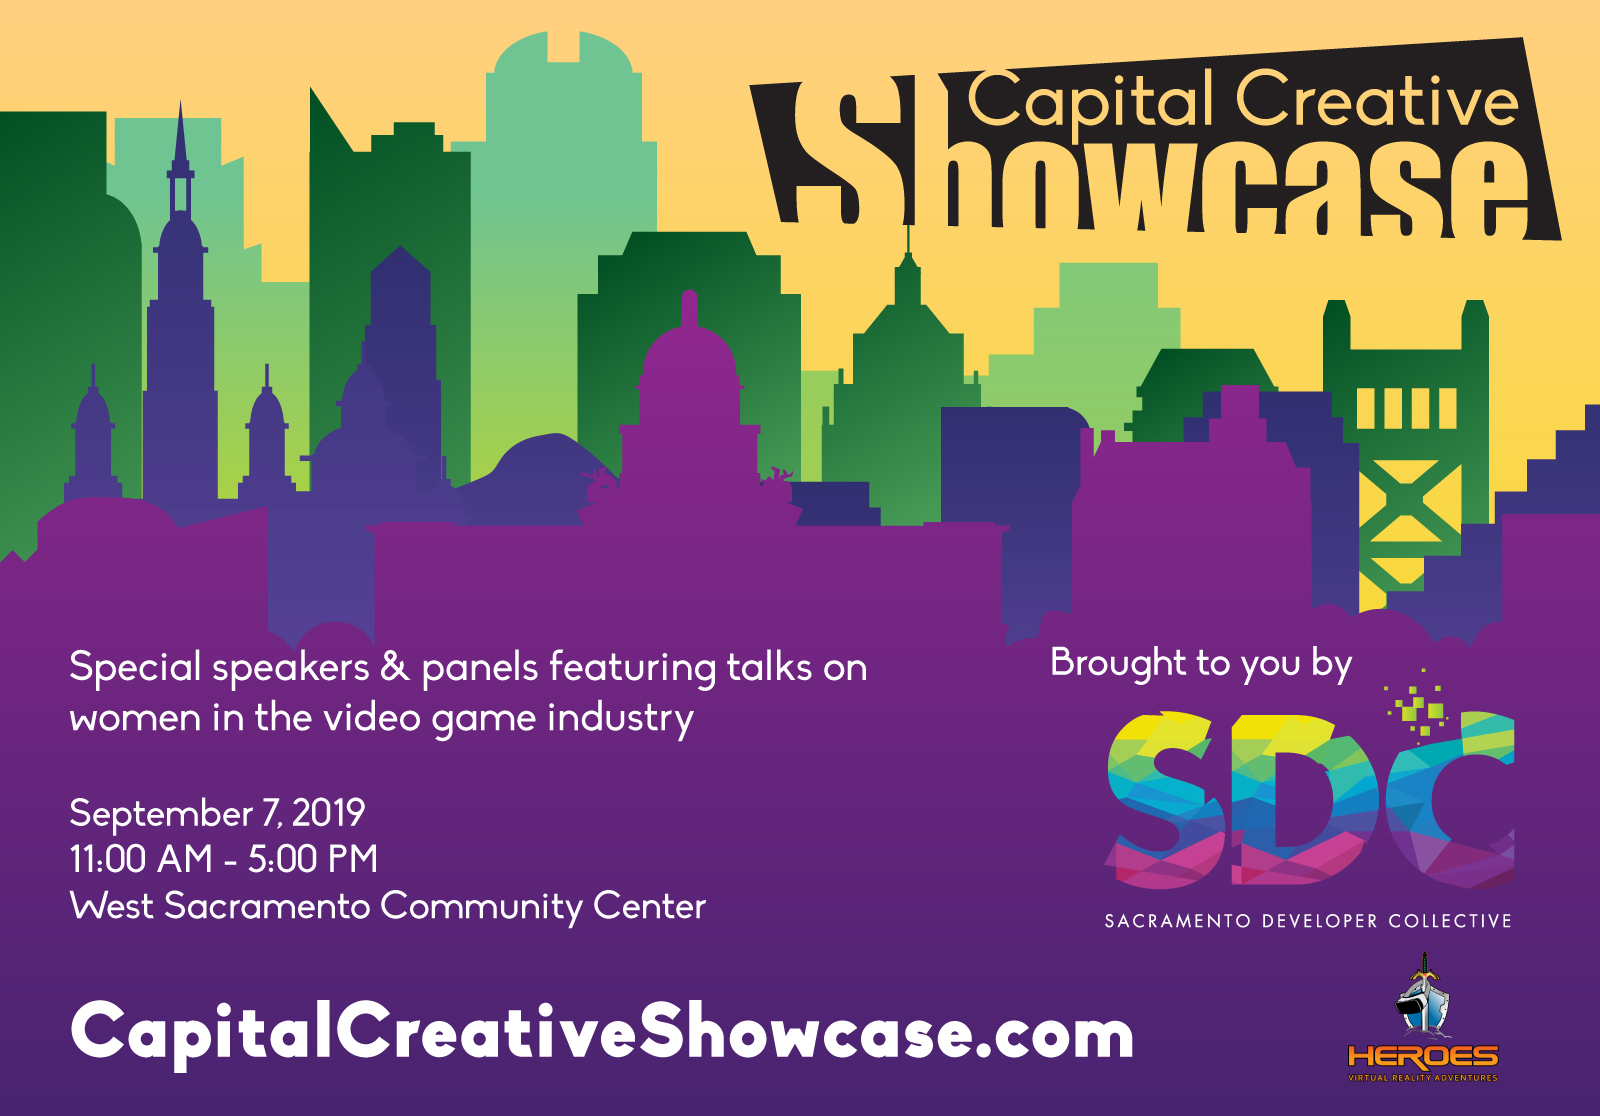 Capital Creative Showcase!